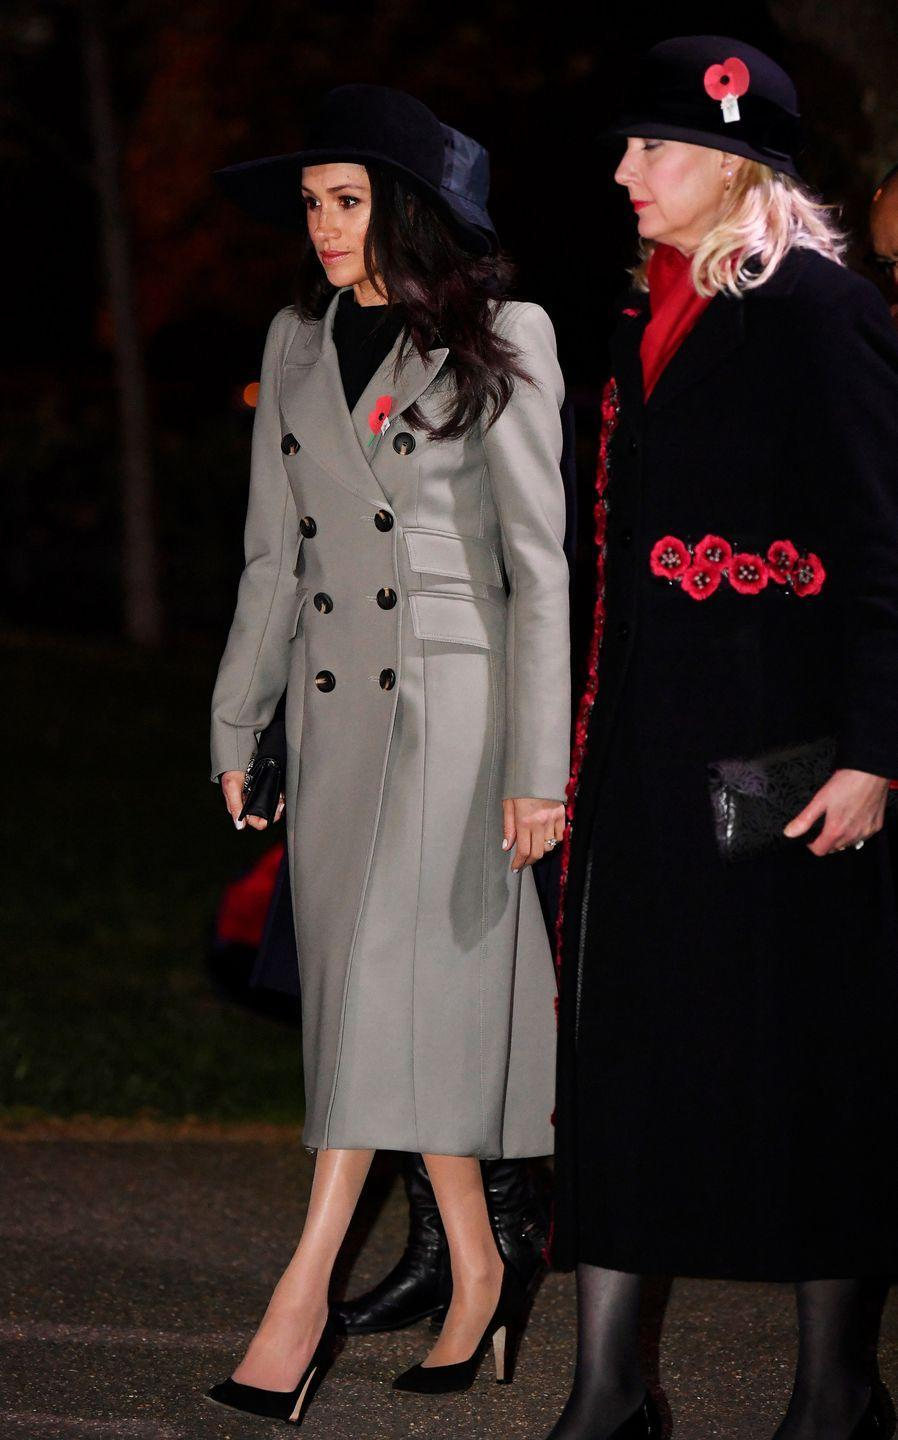 """<p>Meghan attended an <a href=""""https://www.townandcountrymag.com/society/tradition/a20060050/prince-william-anzac-day-royal-baby-3-comments/"""" rel=""""nofollow noopener"""" target=""""_blank"""" data-ylk=""""slk:early morning memorial service in honor of Anzac Day"""" class=""""link rapid-noclick-resp"""">early morning memorial service in honor of Anzac Day</a> wearing a coat by Smythe with Sarah Flint pumps and a Gucci mini bag. </p><p><a class=""""link rapid-noclick-resp"""" href=""""https://go.redirectingat.com?id=74968X1596630&url=https%3A%2F%2Fwww.sarahflint.com%2Fproducts%2Fjay-pump-100-black-suede%3Fvariant%3D28249886273&sref=https%3A%2F%2Fwww.townandcountrymag.com%2Fstyle%2Ffashion-trends%2Fg3272%2Fmeghan-markle-preppy-style%2F"""" rel=""""nofollow noopener"""" target=""""_blank"""" data-ylk=""""slk:SHOP NOW"""">SHOP NOW</a> <em>Sarah Flint Jay Pump, $395</em><br></p><p><a class=""""link rapid-noclick-resp"""" href=""""https://go.redirectingat.com?id=74968X1596630&url=https%3A%2F%2Fwww.saksfifthavenue.com%2Fmain%2FProductDetail.jsp%3FPRODUCT%253C%253Eprd_id%3D845524447112556&sref=https%3A%2F%2Fwww.townandcountrymag.com%2Fstyle%2Ffashion-trends%2Fg3272%2Fmeghan-markle-preppy-style%2F"""" rel=""""nofollow noopener"""" target=""""_blank"""" data-ylk=""""slk:SHOP NOW"""">SHOP NOW</a> <em>Gucci Dionysus Mini Shoulder Bag, $830</em></p>"""